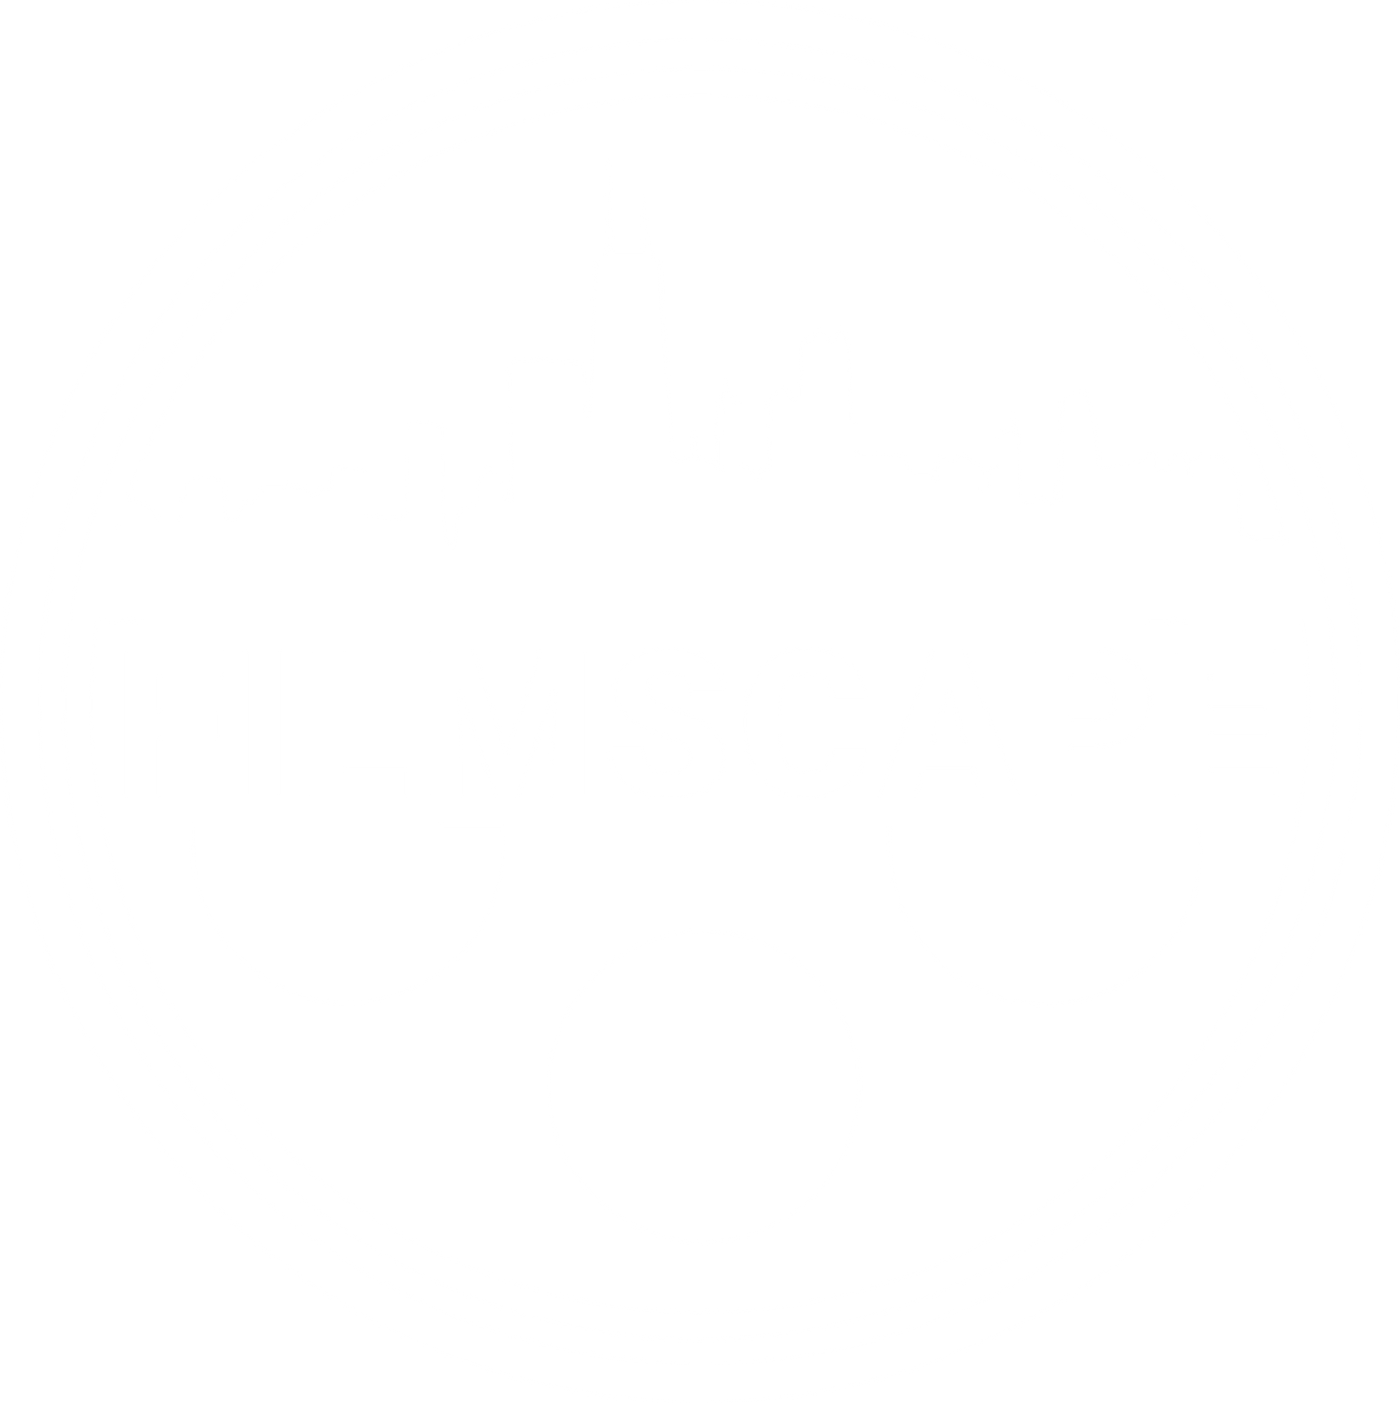 WIN 2 PERSONALIZED CHAIRS: FILMSCAPE CHICAGO